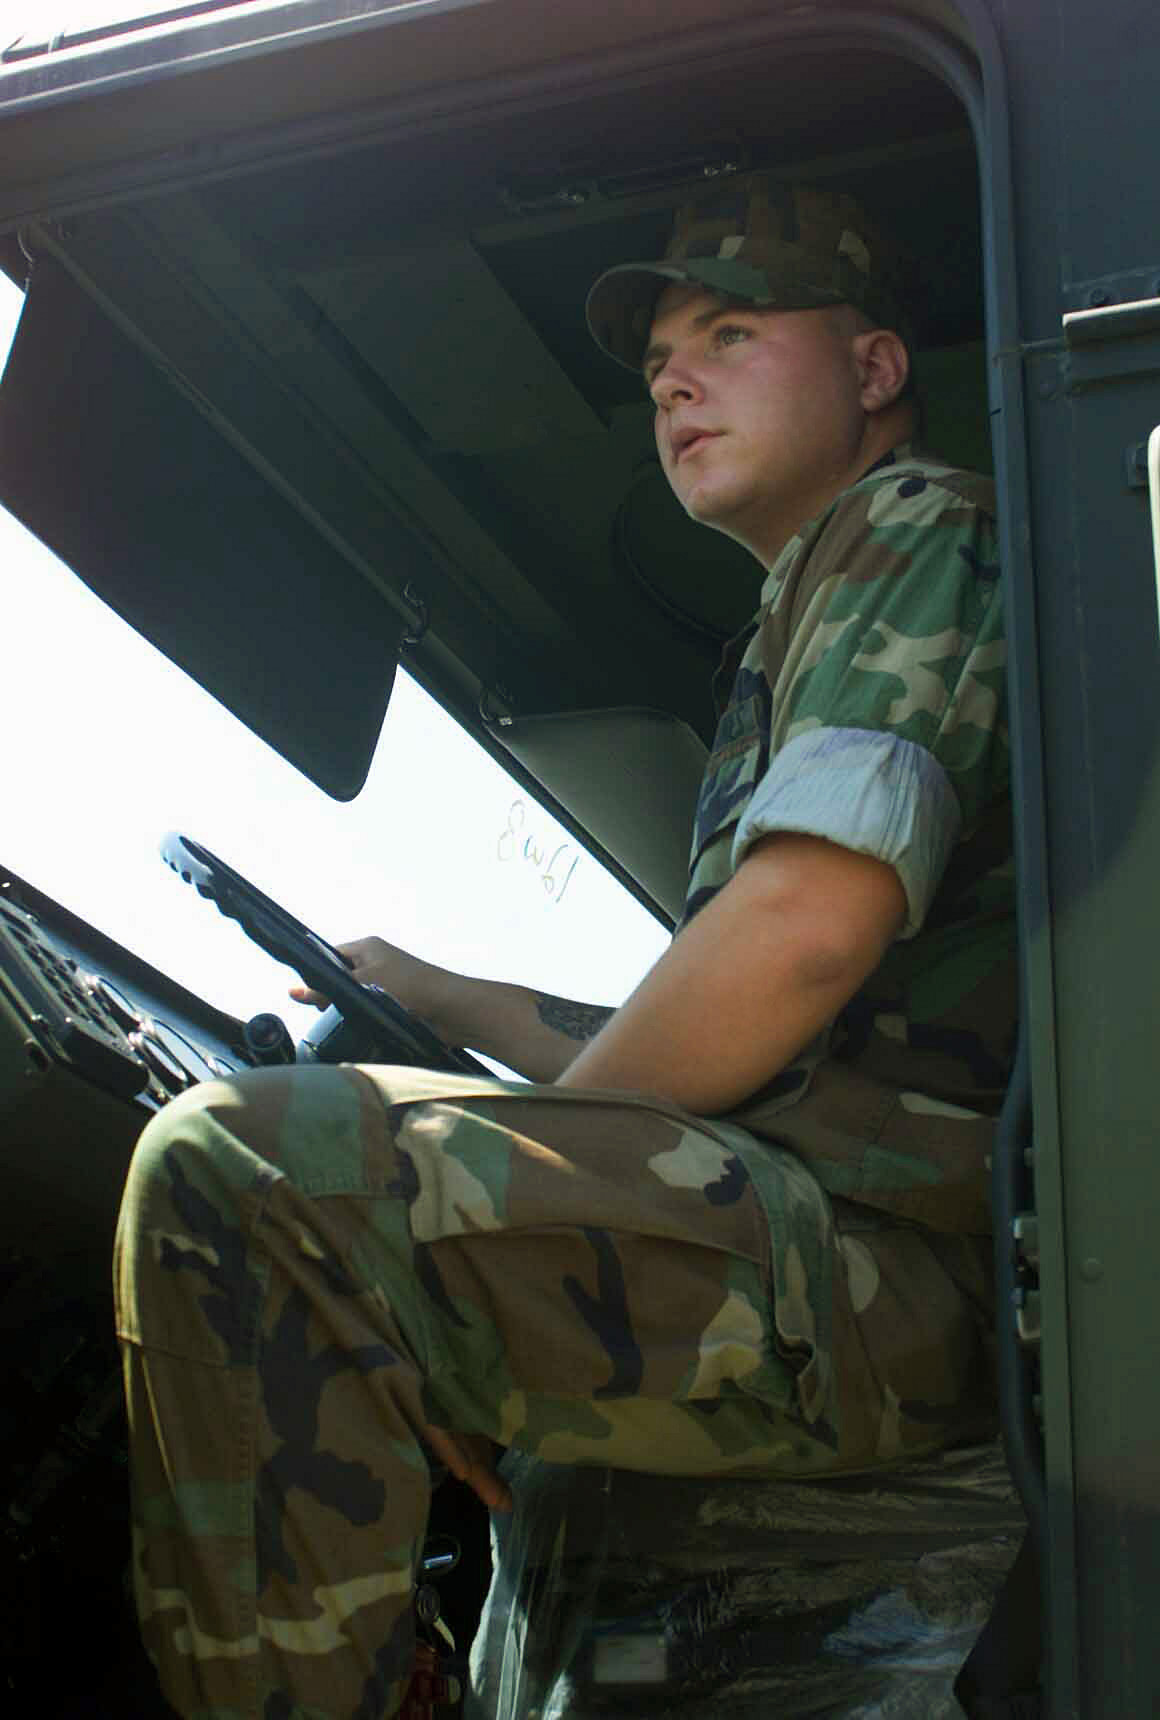 US Marine Corps (USMC) Lance Corporal (LCPL) Michael Ricks, Vehicle Recovery Operator, Headquarters Battalion (HQ BN), Truck Company, 1ST Marine Division (MAR DIV), Marine Corps Base (MCB) Camp Pendleton, California (CA), sits in a Medium Tactical Vehicle Replacement (MTVR) 7-ton transportation truck in the Companys parking lot. The main goal of Truck Company is to ensure all military vehicles coming their way are in proper working order